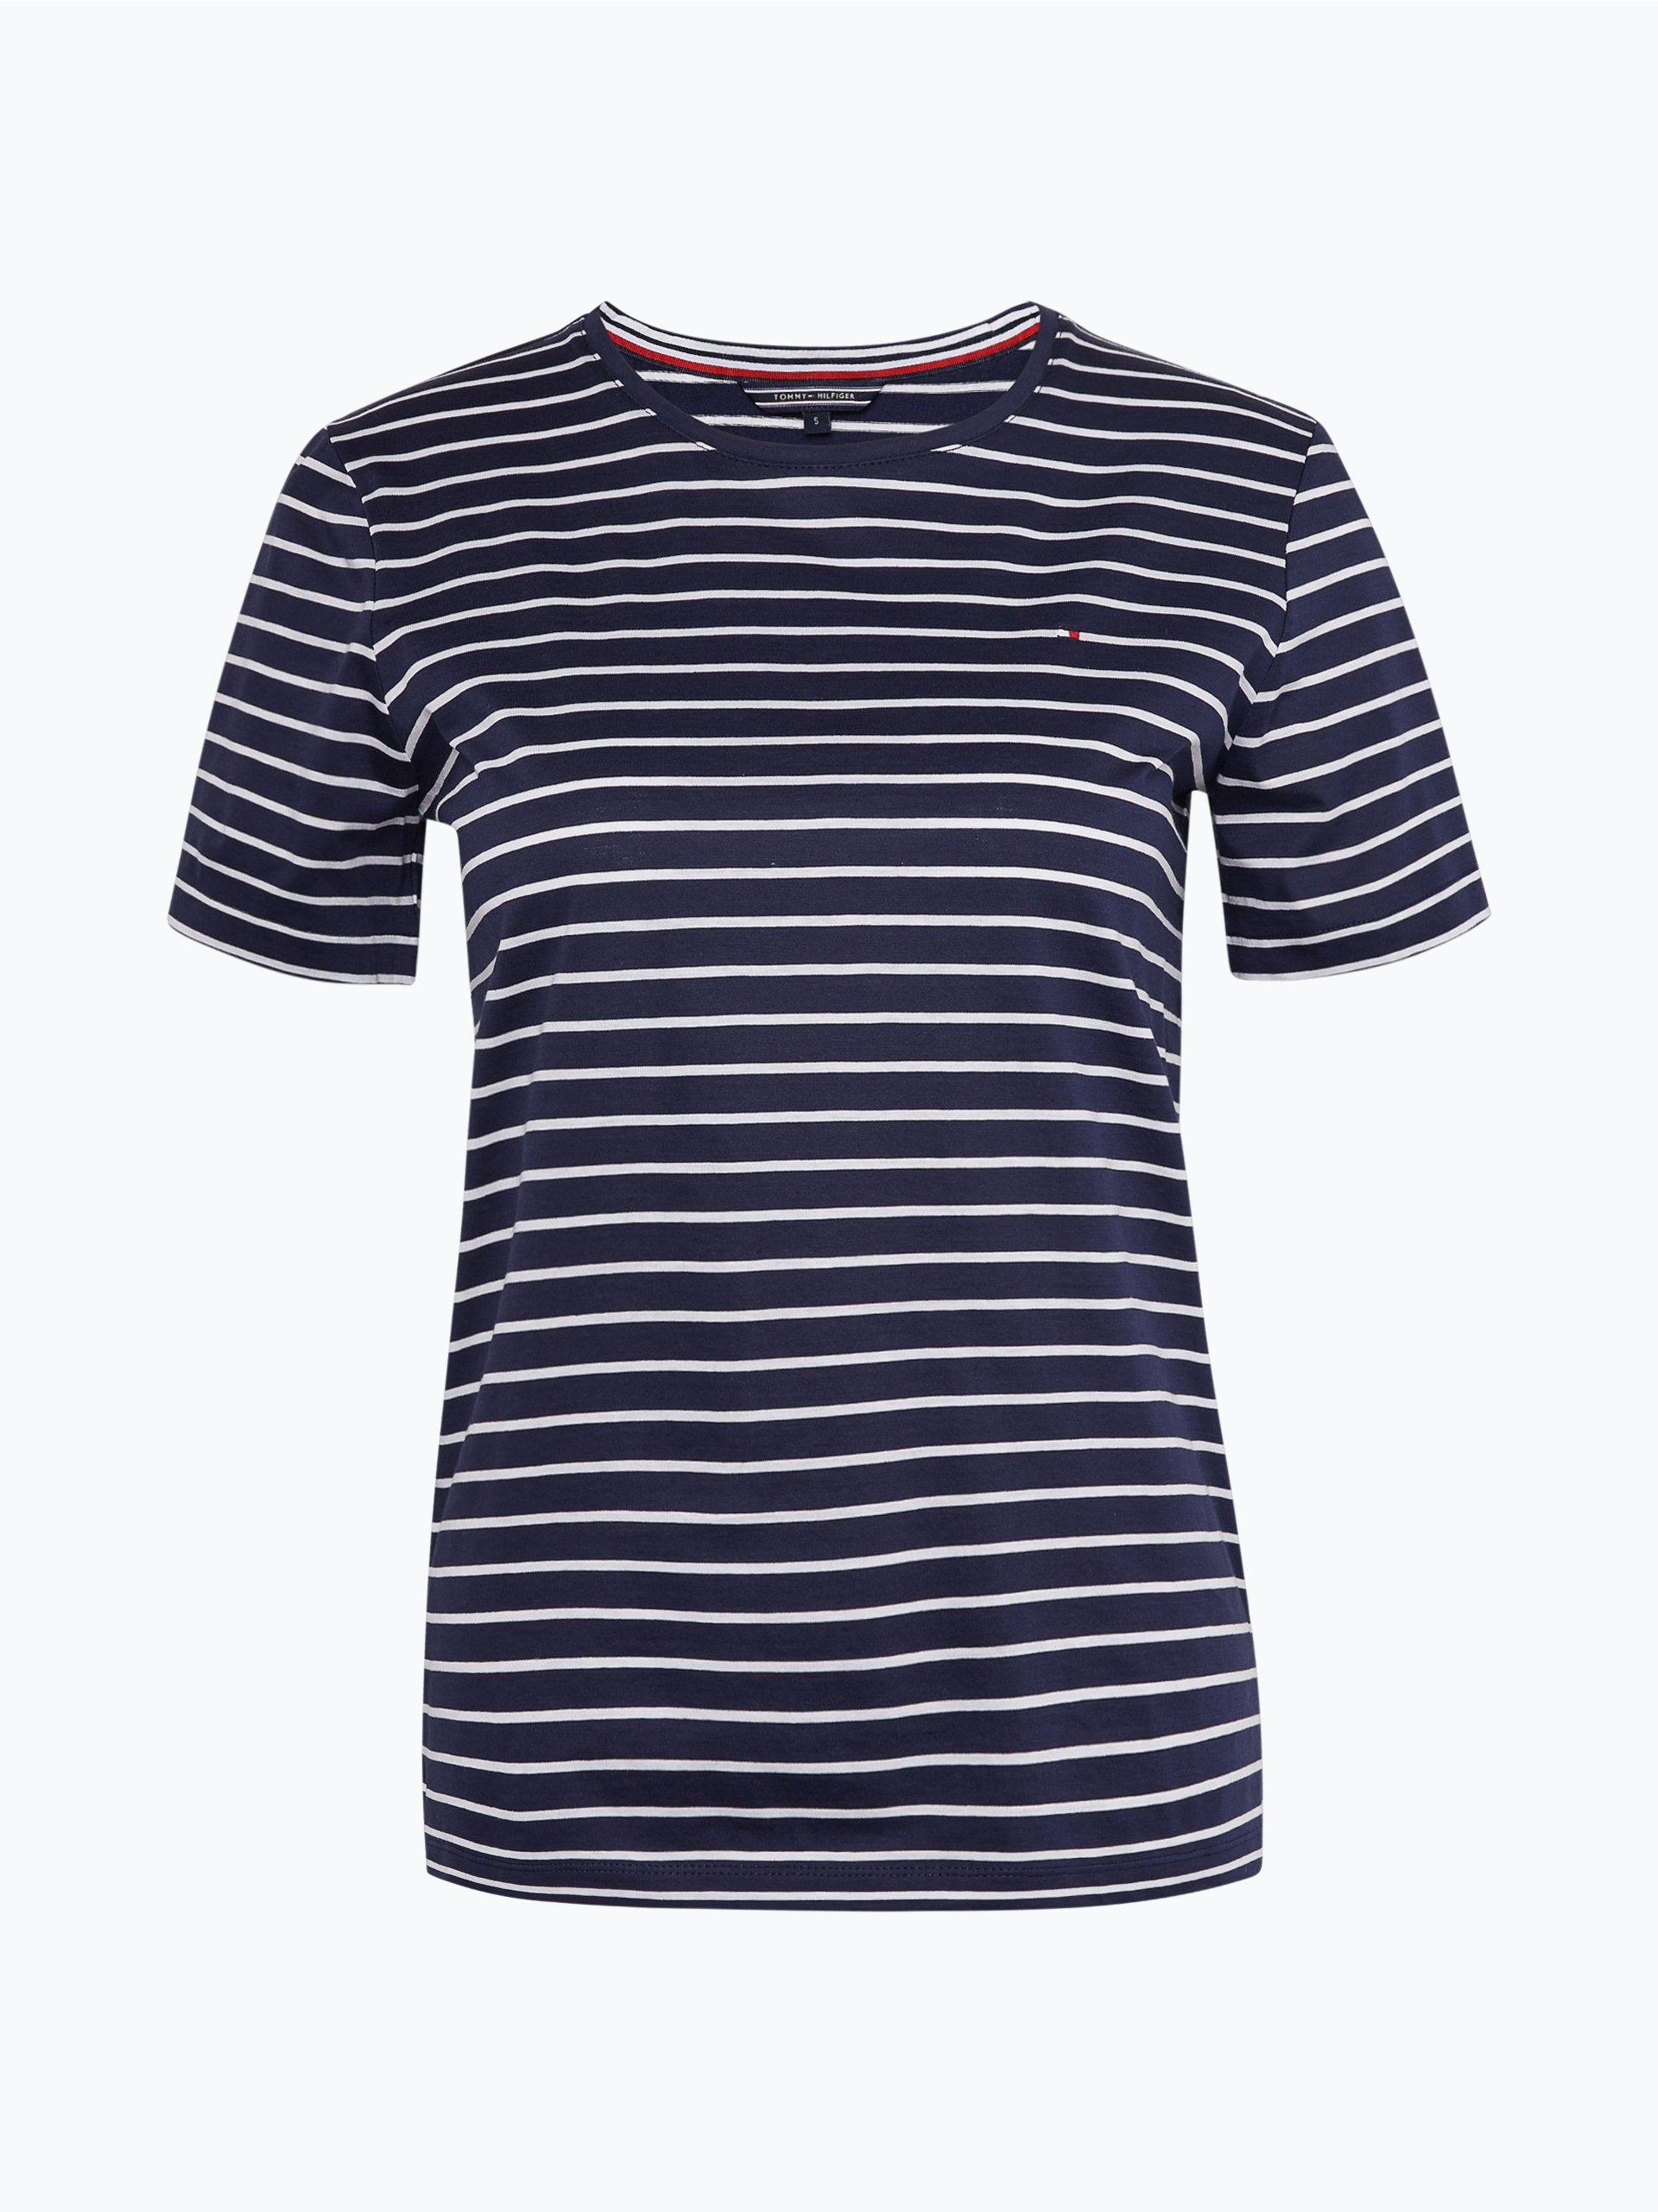 tommy hilfiger damen t shirt conny 2 online kaufen peek und cloppenburg de. Black Bedroom Furniture Sets. Home Design Ideas